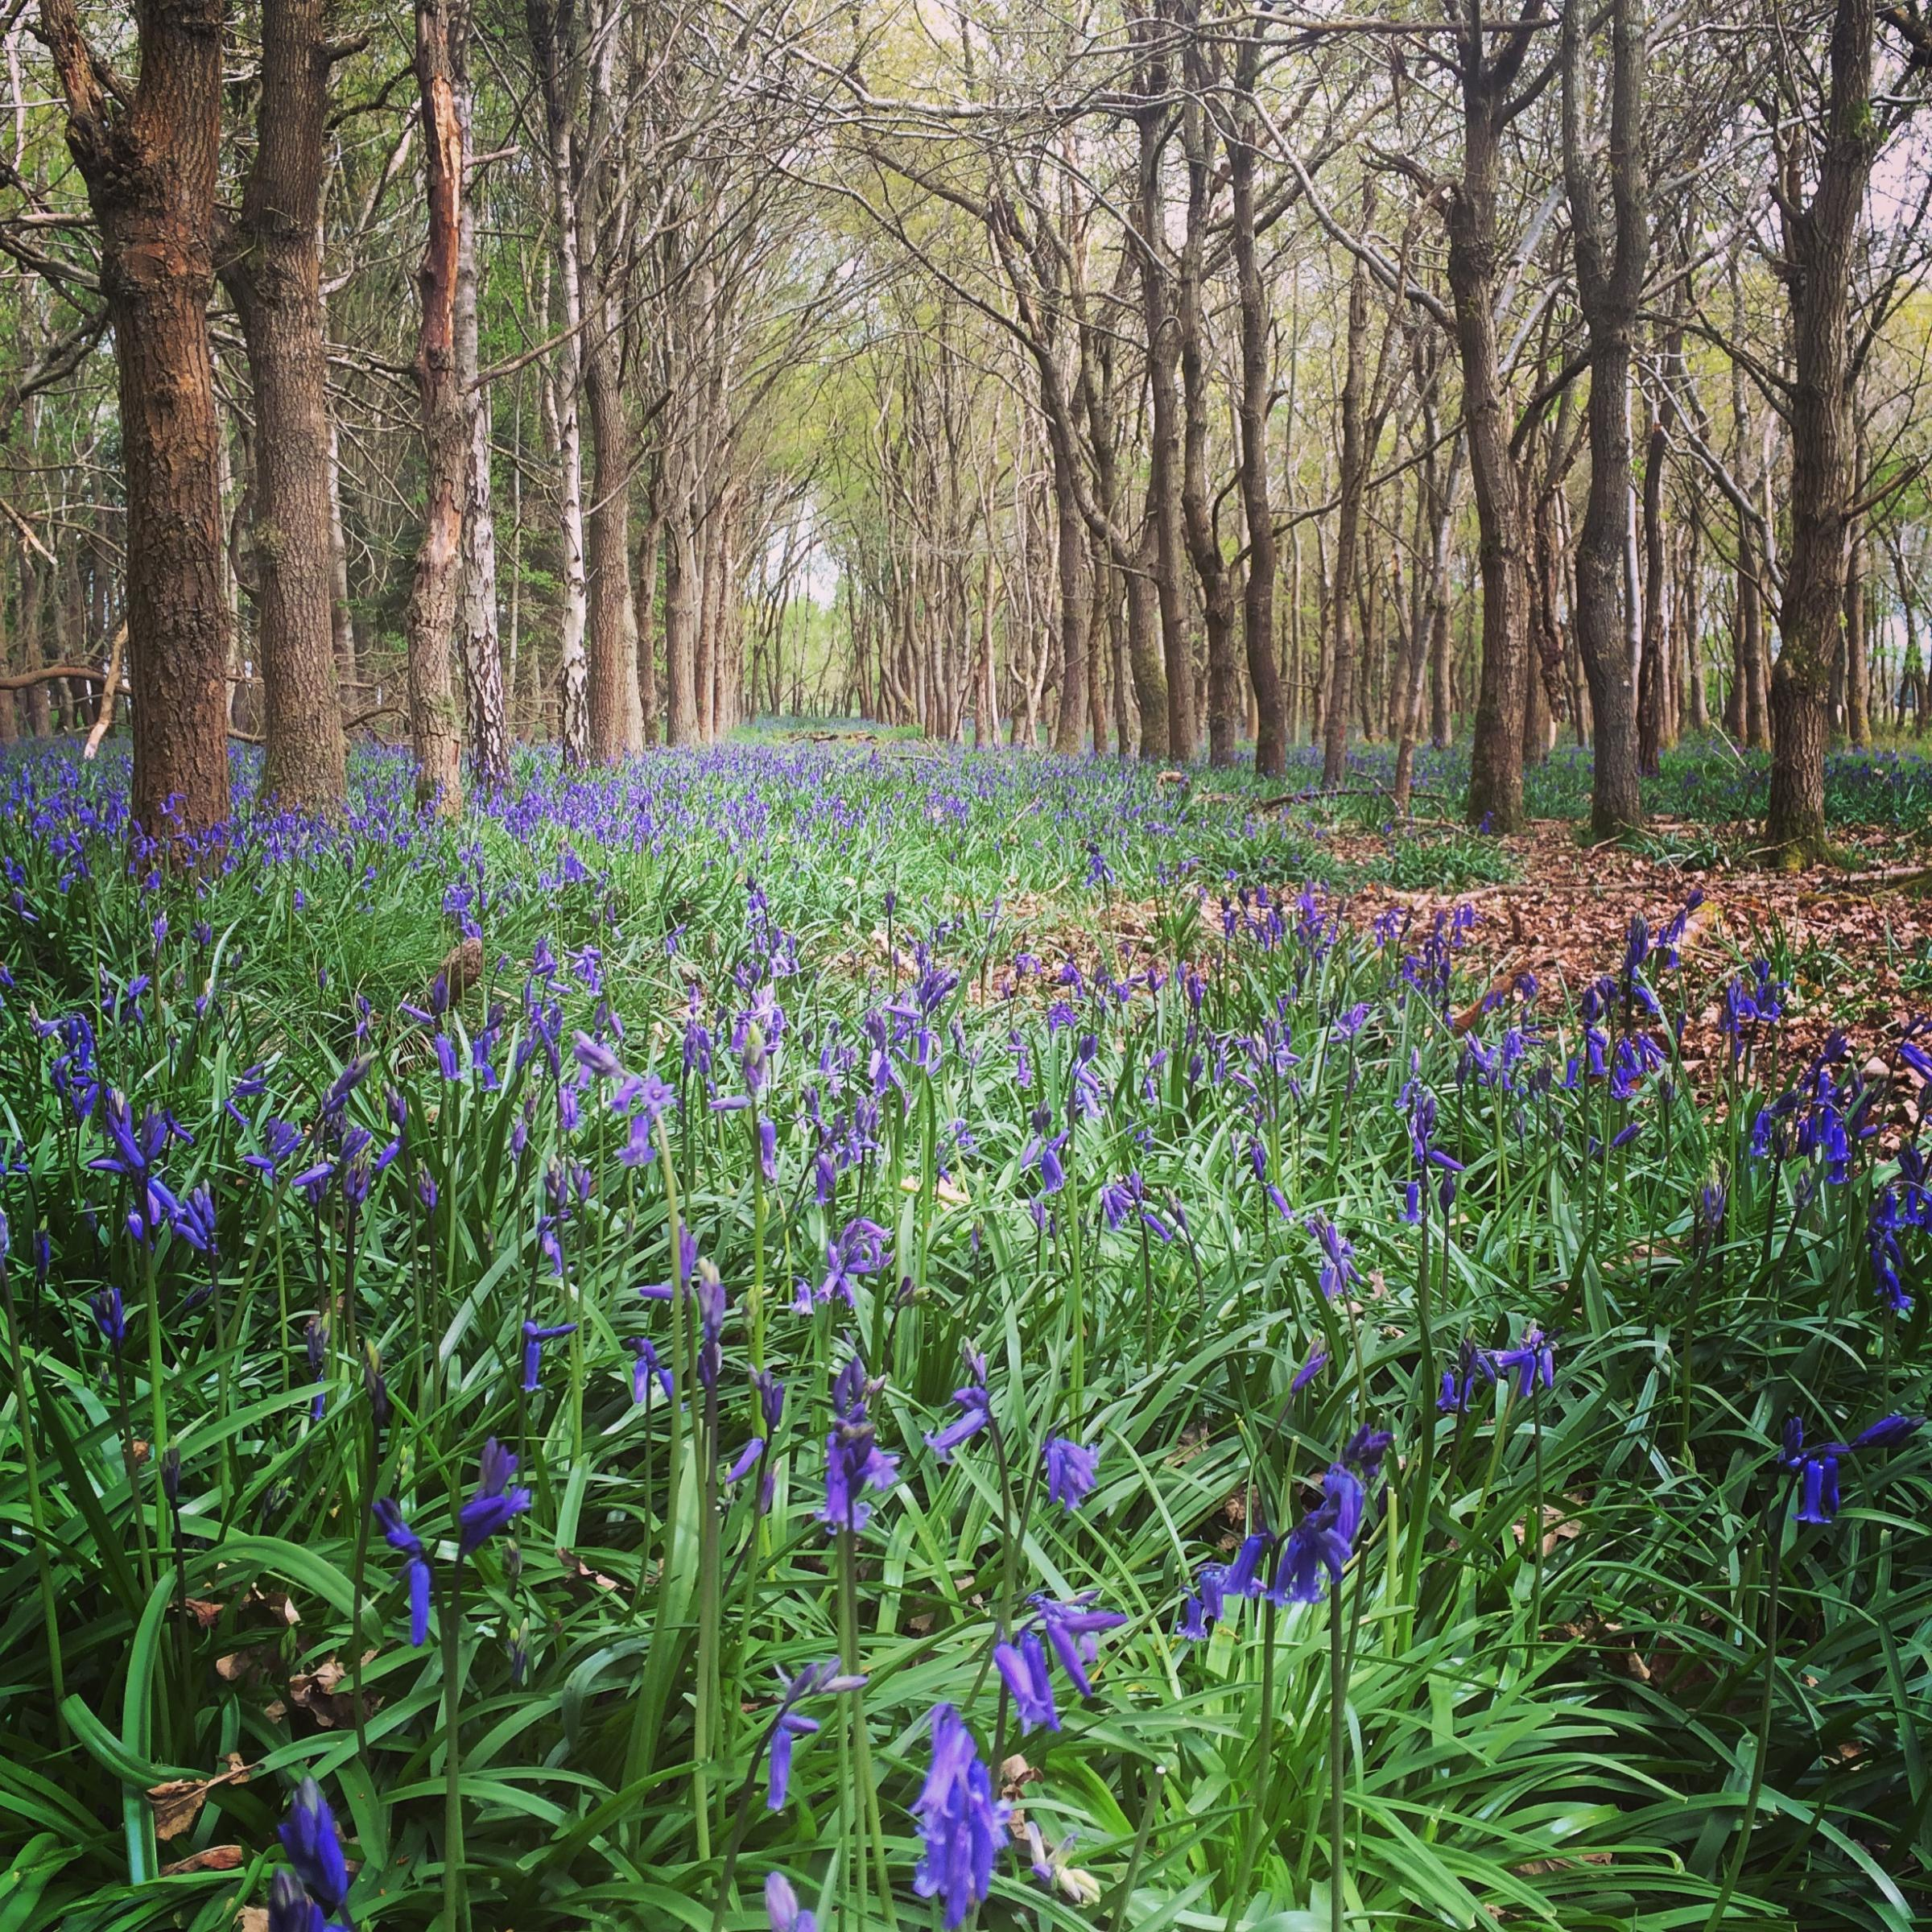 Venture through Ragley's Bluebell Woods this May